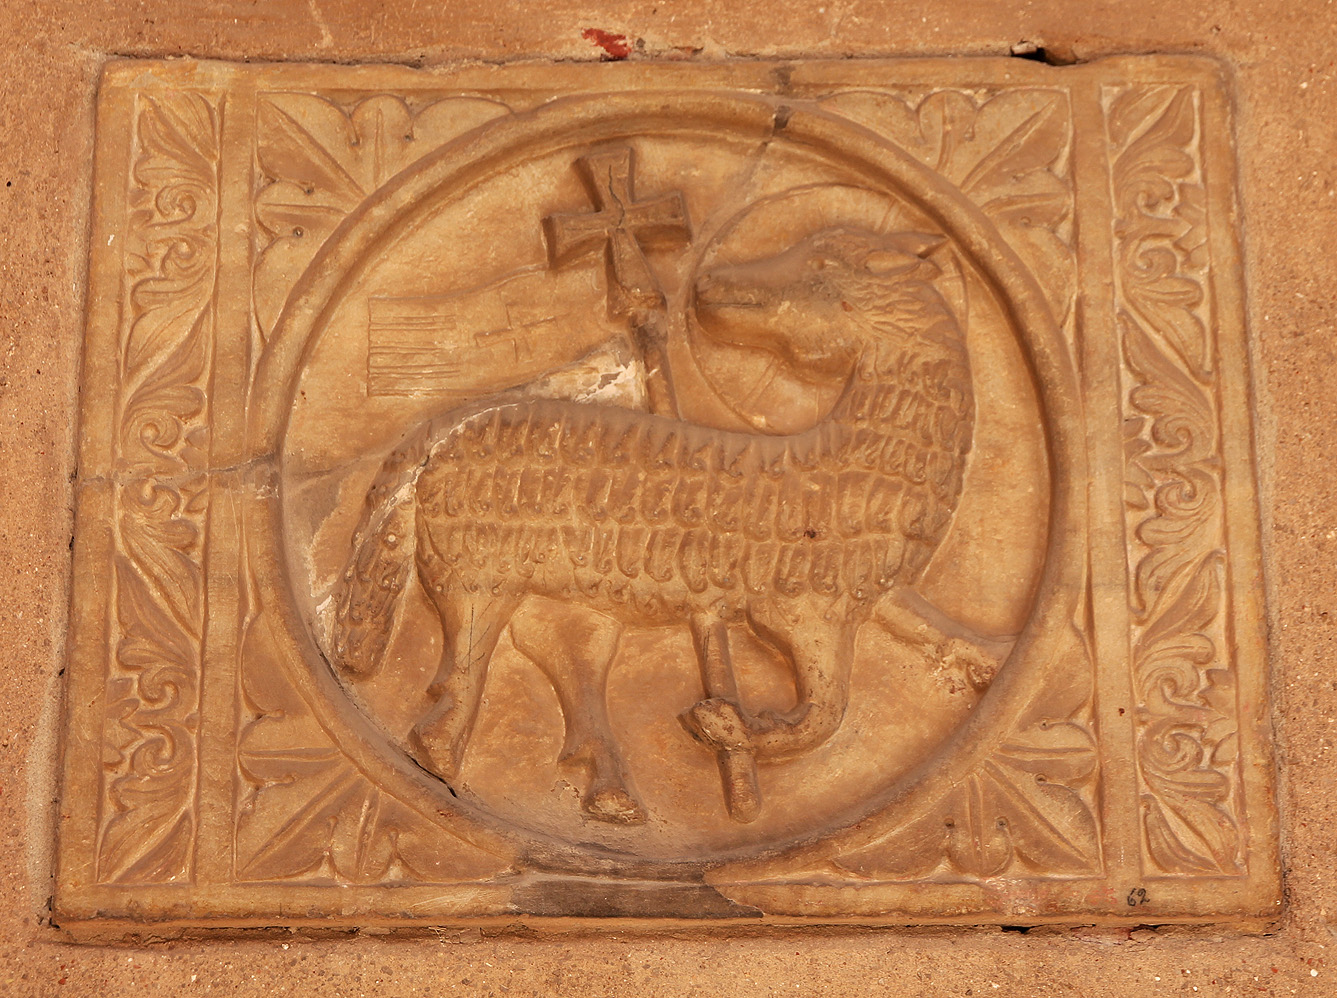 Half-relief of the lamb of God (Agnus Dei) in the atrium wall.